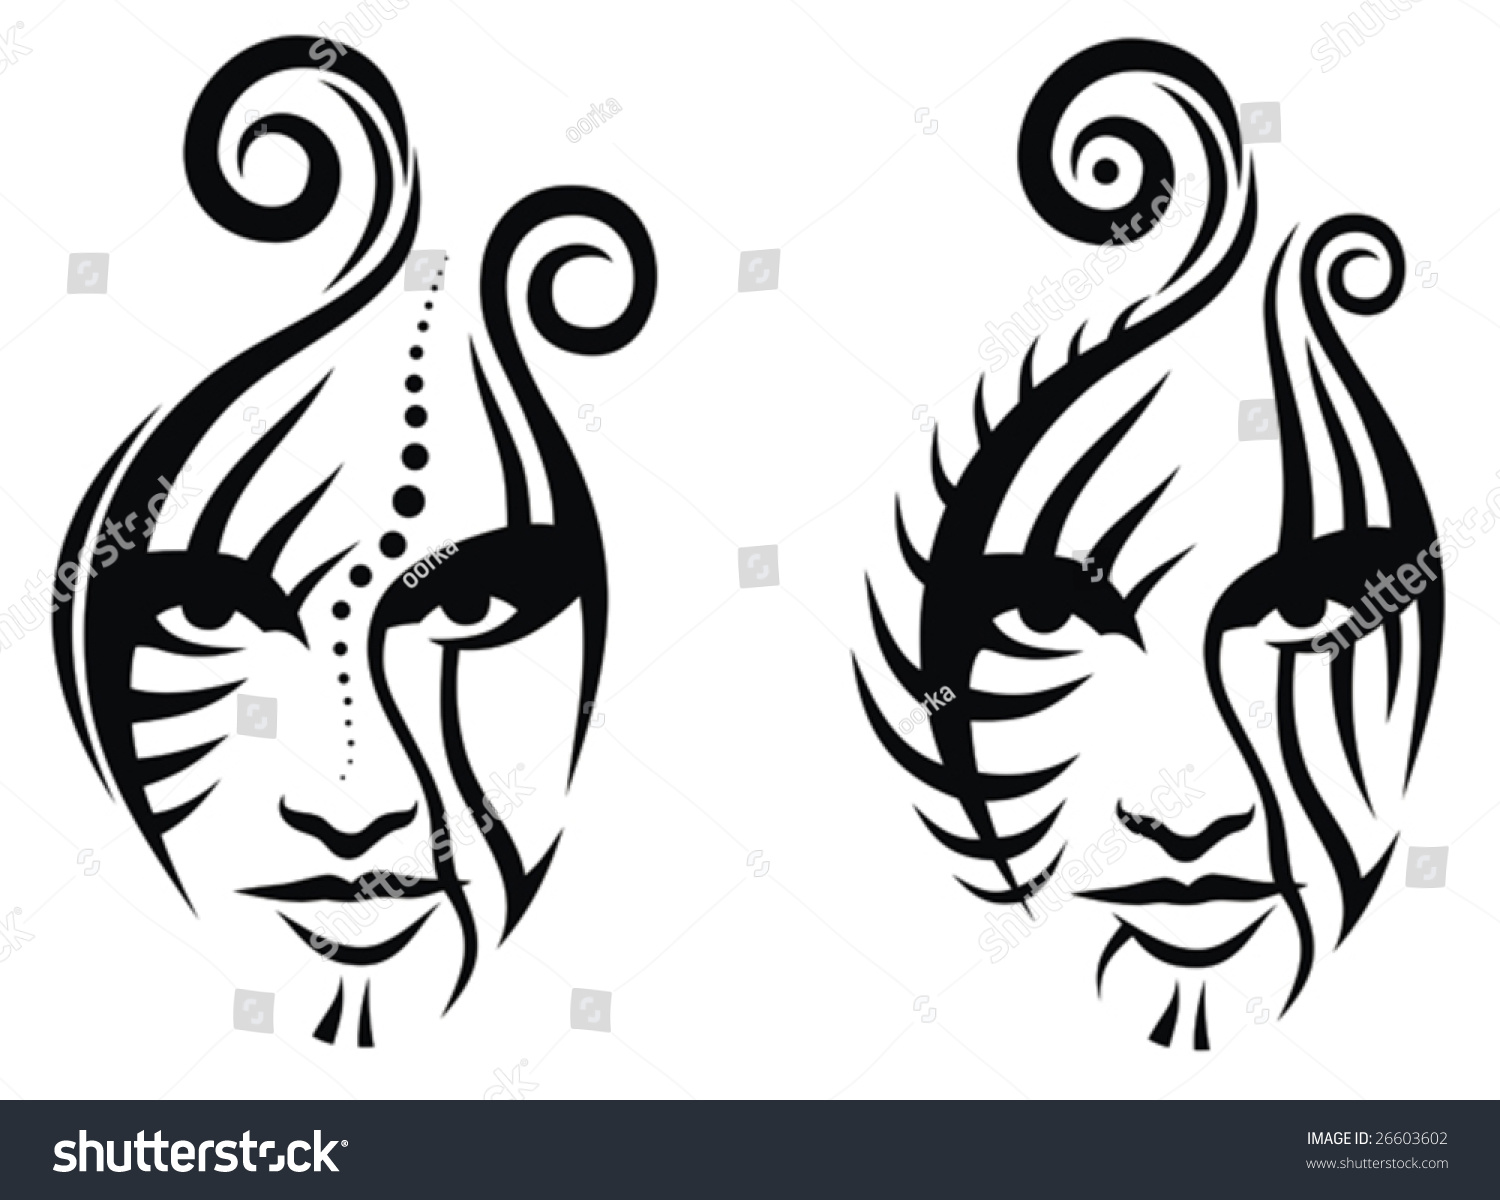 Line Drawing Face Tattoo : Tribal face tattoo stock vector shutterstock